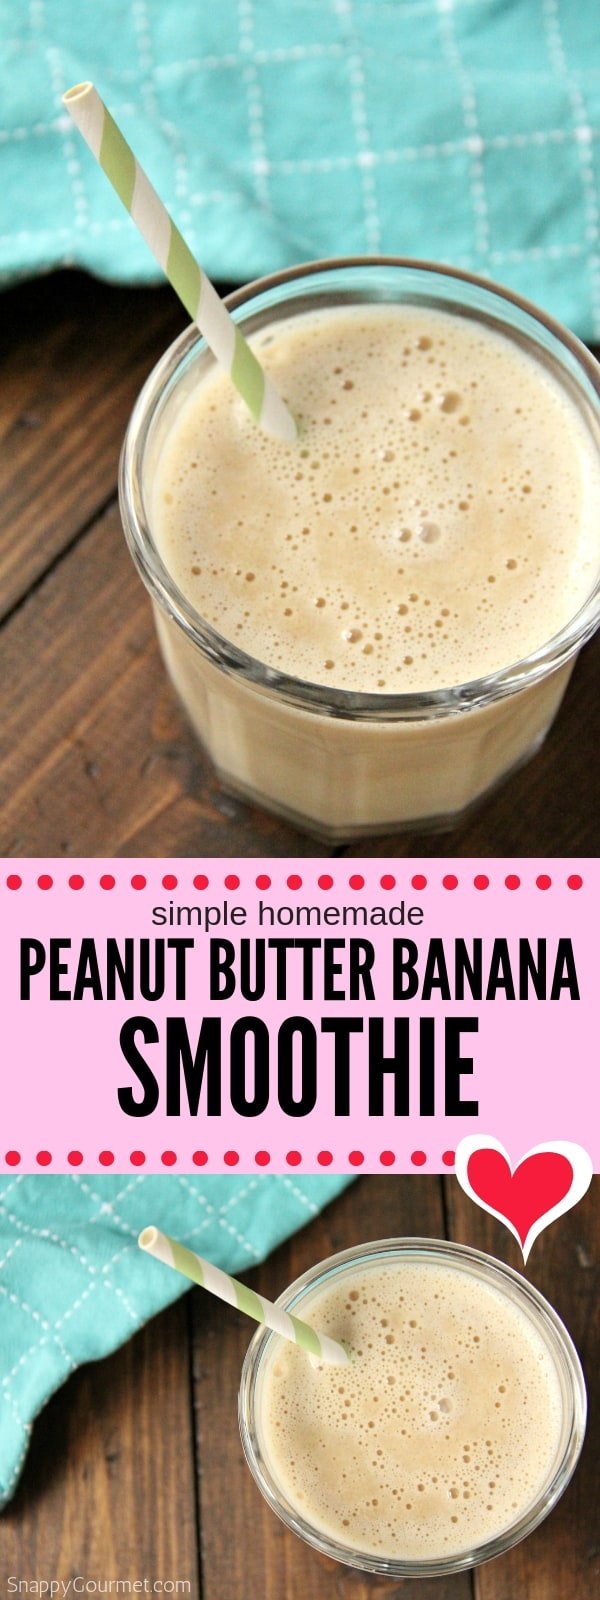 photo collage of Peanut Butter Banana Smoothie